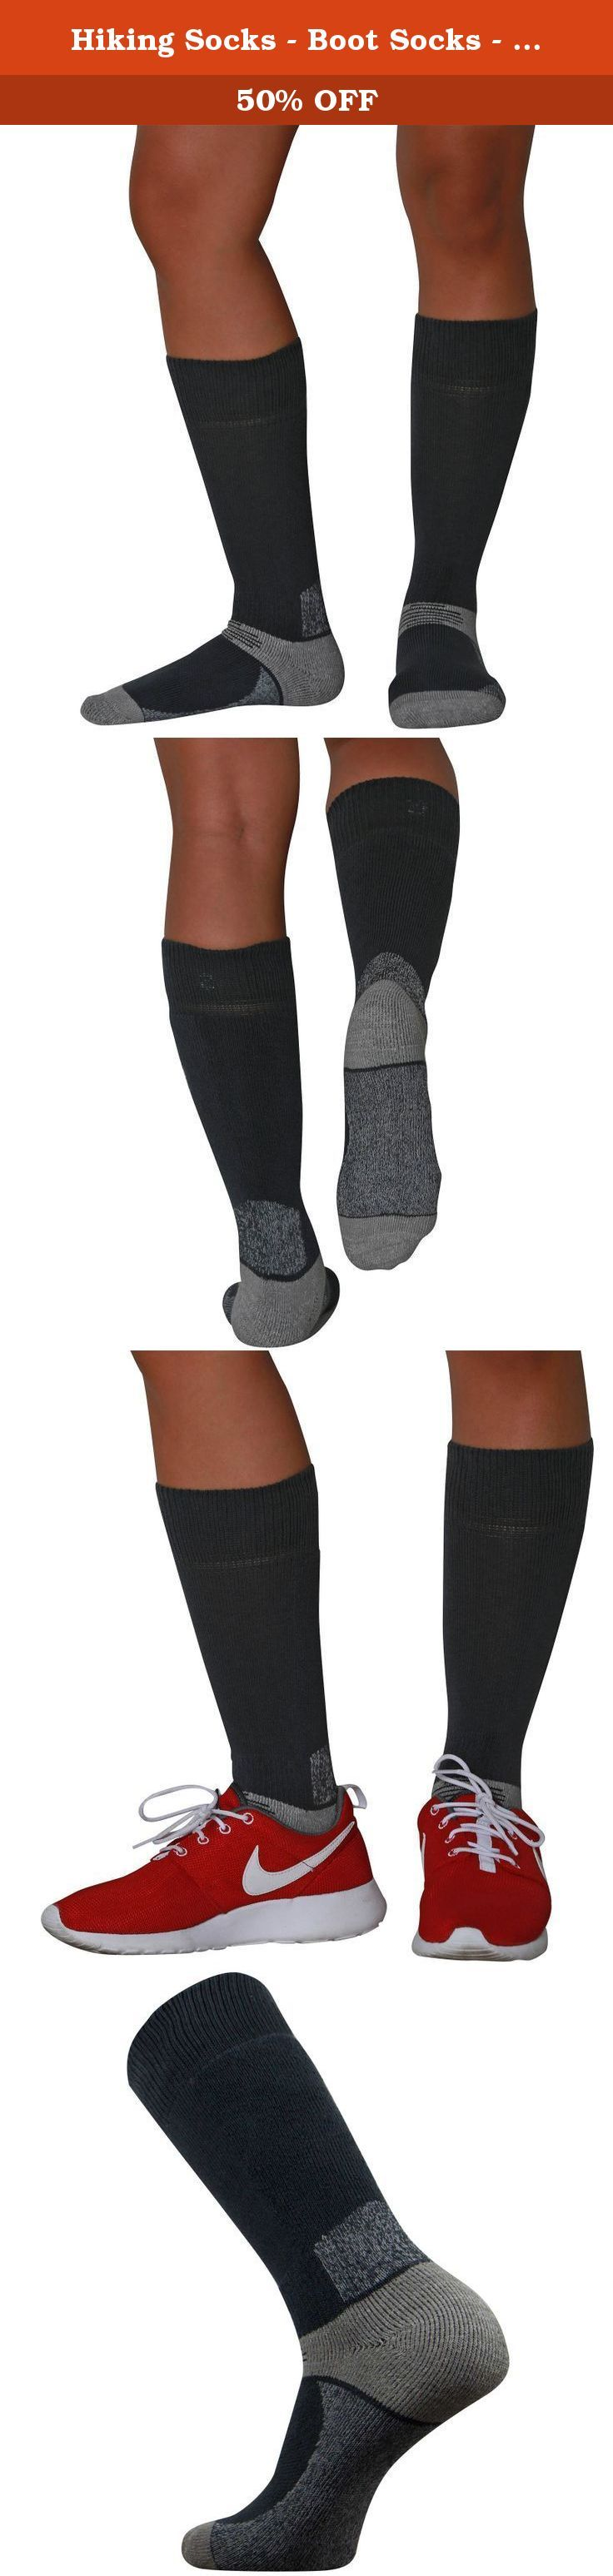 Hiking Socks - Boot Socks - Great for Camping, Outdoors, Hunting, Cold Weather, and Snow (Black, Small). The Pure Athlete hiking socks are the best hiking socks available. Made of ultra-soft material, the boot socks offer superior comfort. The socks don't slide into boots thanks to a no-slip cuff located at the top of the hiking socks. The socks fit great with hiking boots. They help to keep feet warm without overheating thanks the breathable material. What are the hiking socks good for?…